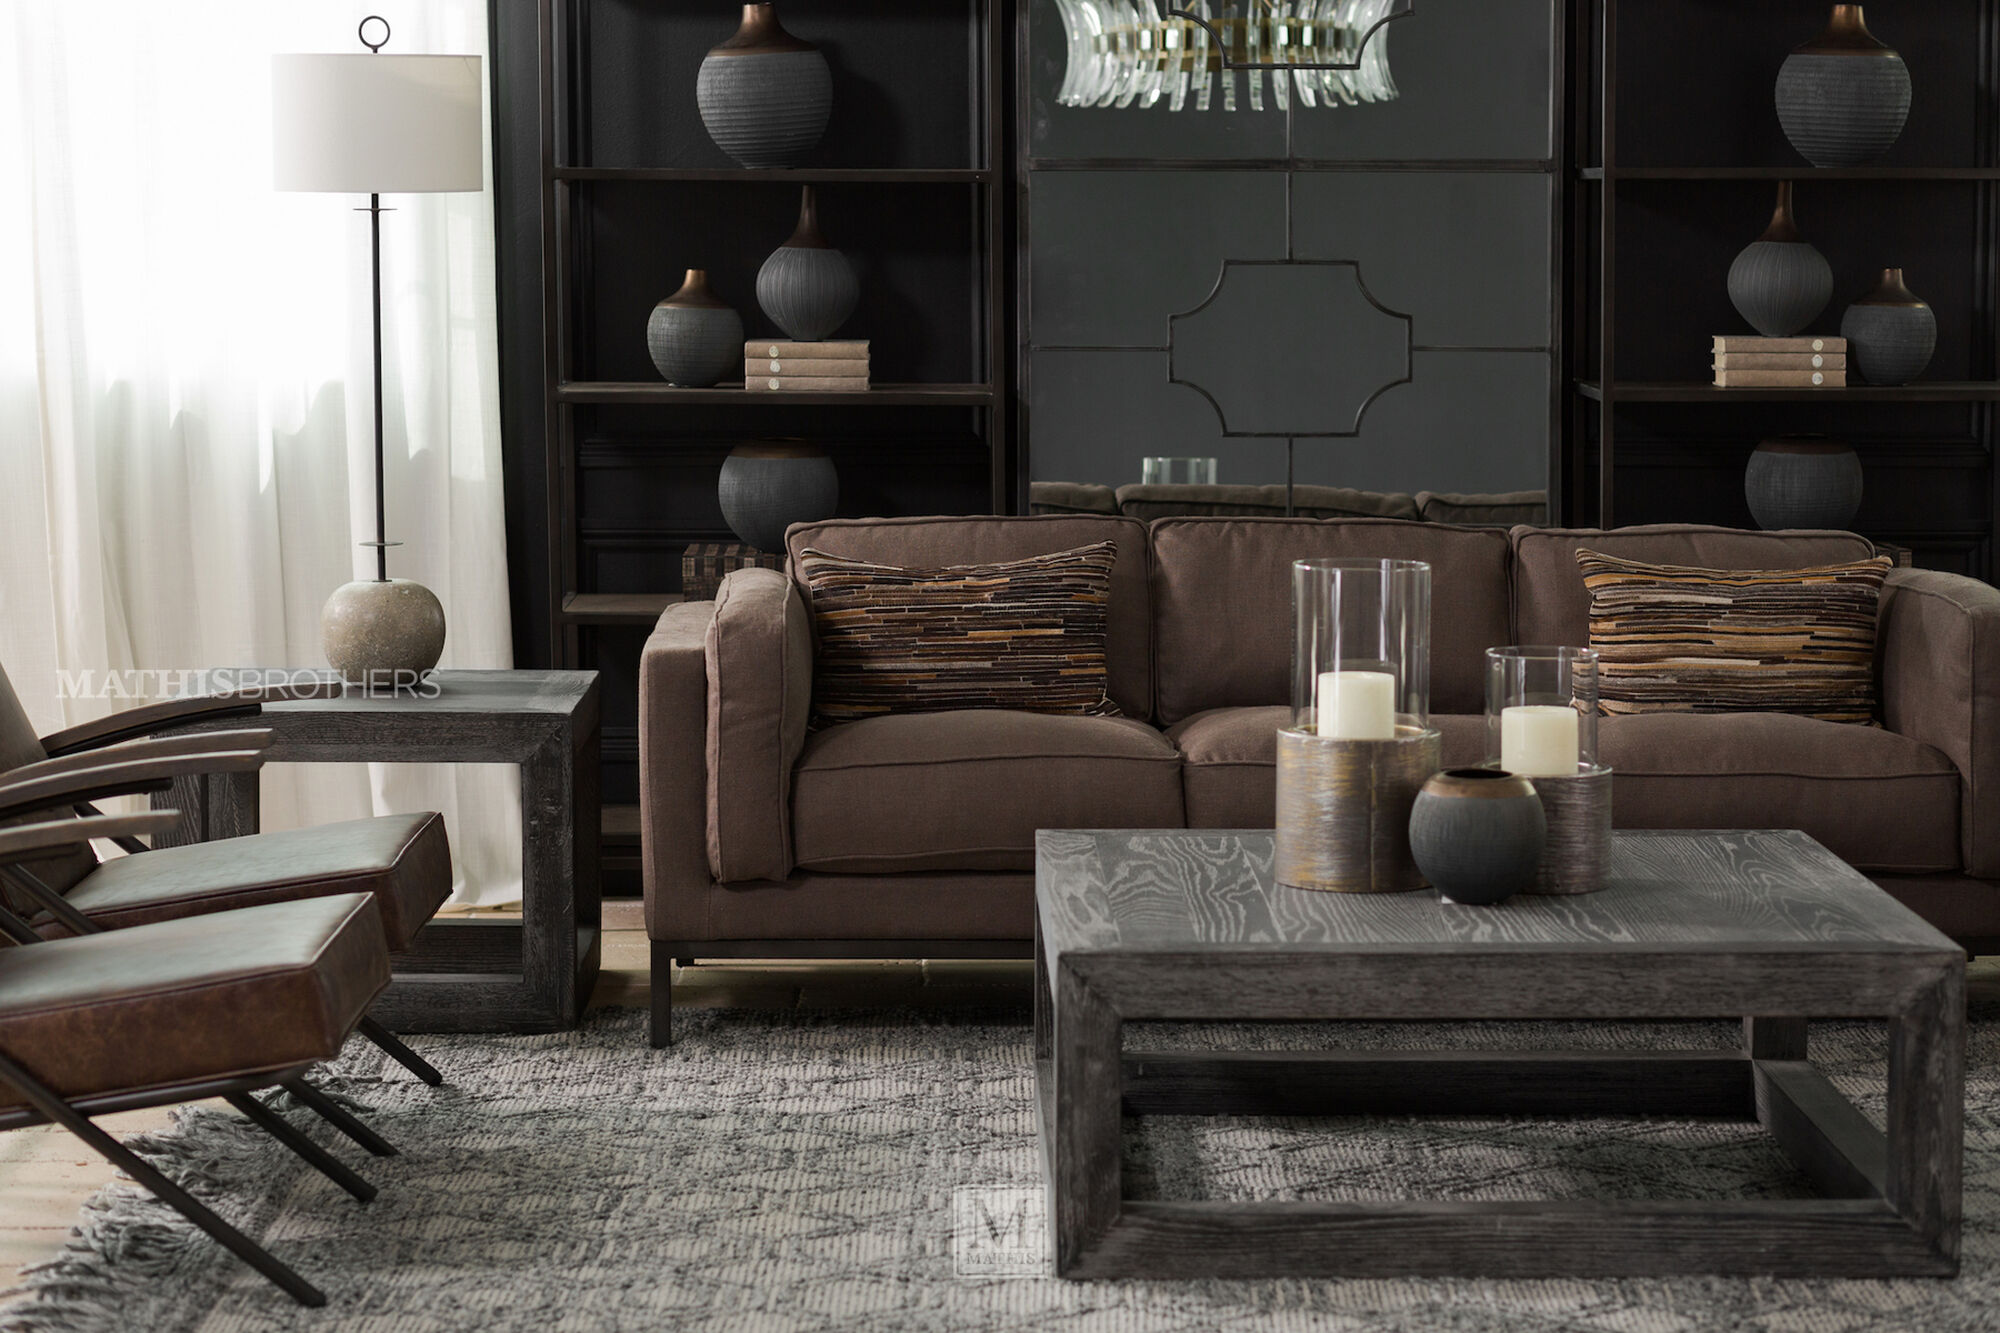 enchanting low seating living room furniture | Low-Profile Three-Seater Sofa in Brown | Mathis Brothers ...